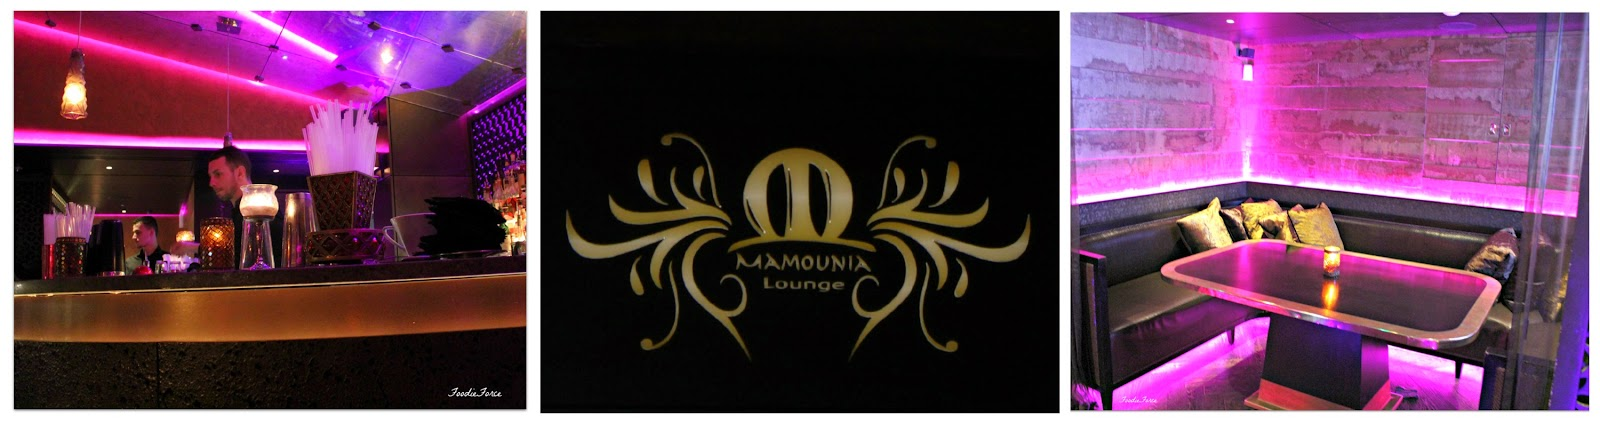 Mamounia Lounge Mayfair